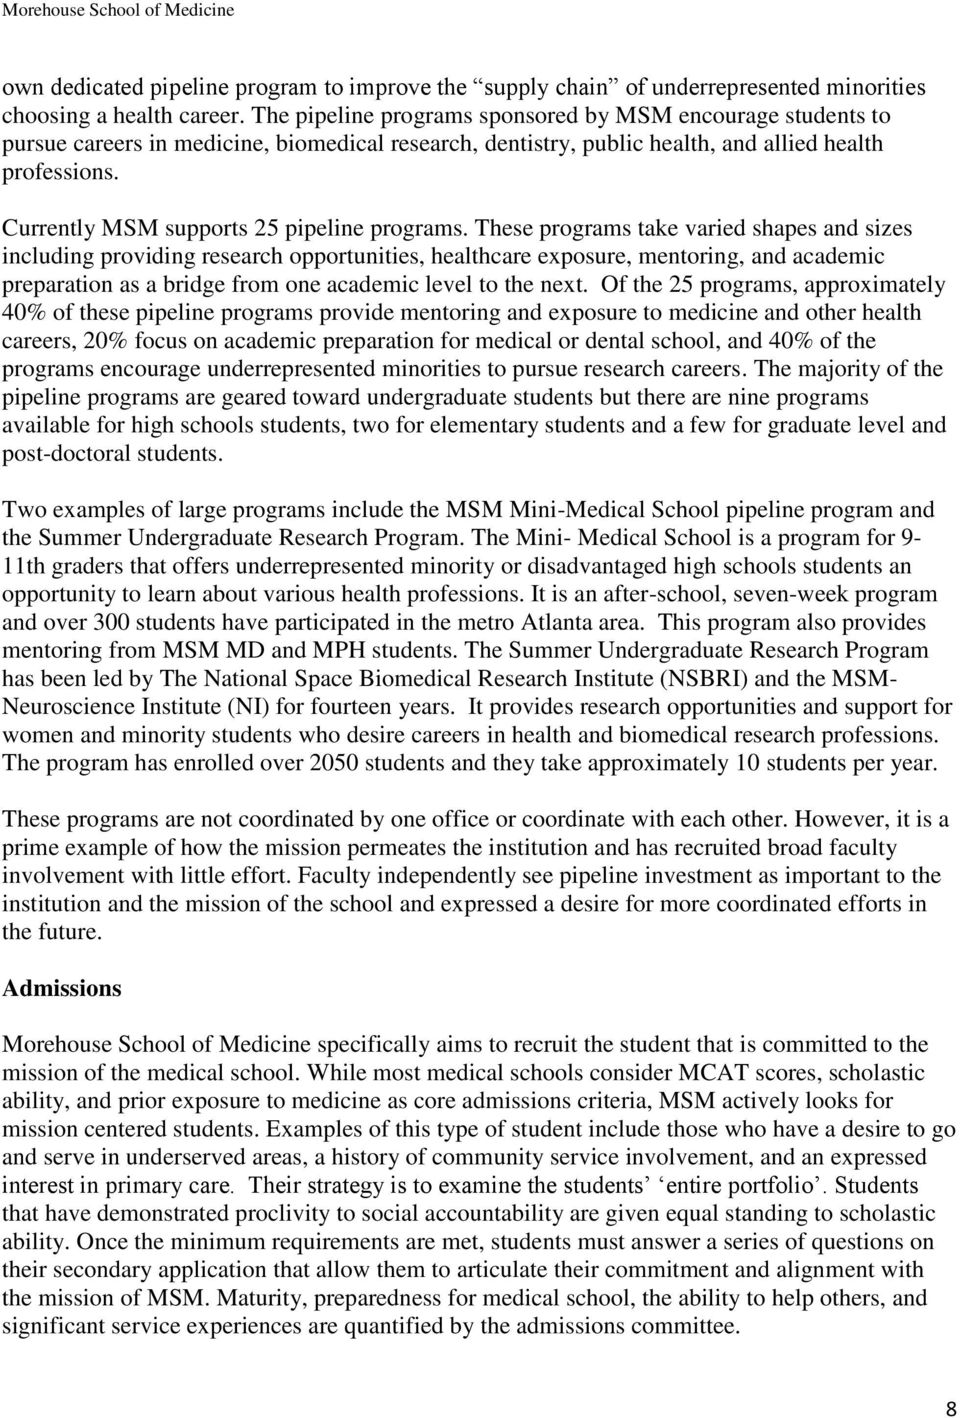 Morehouse School of Medicine - PDF